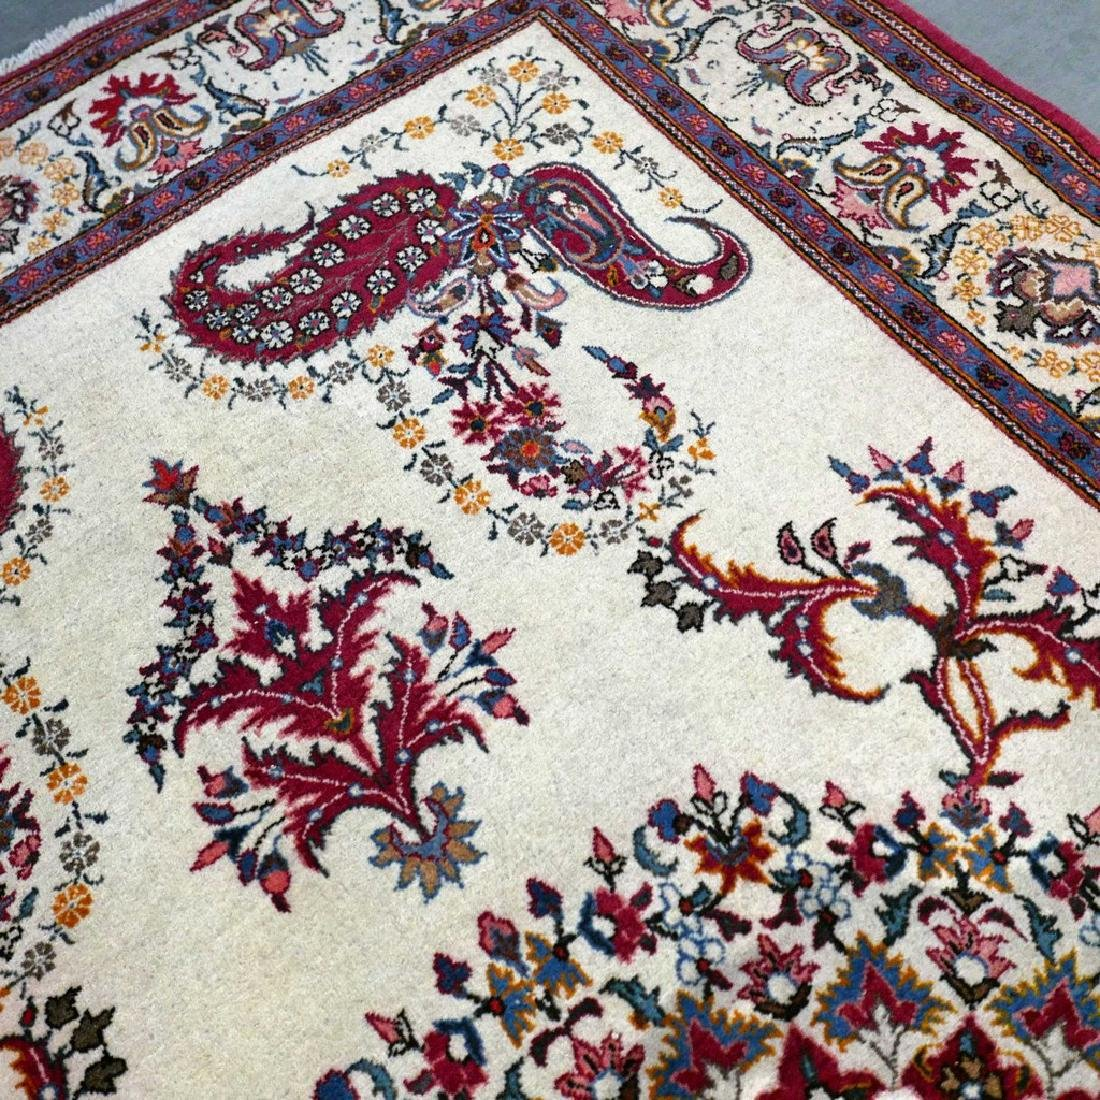 Keshan With Special Design Rug 7x4.4 - 3